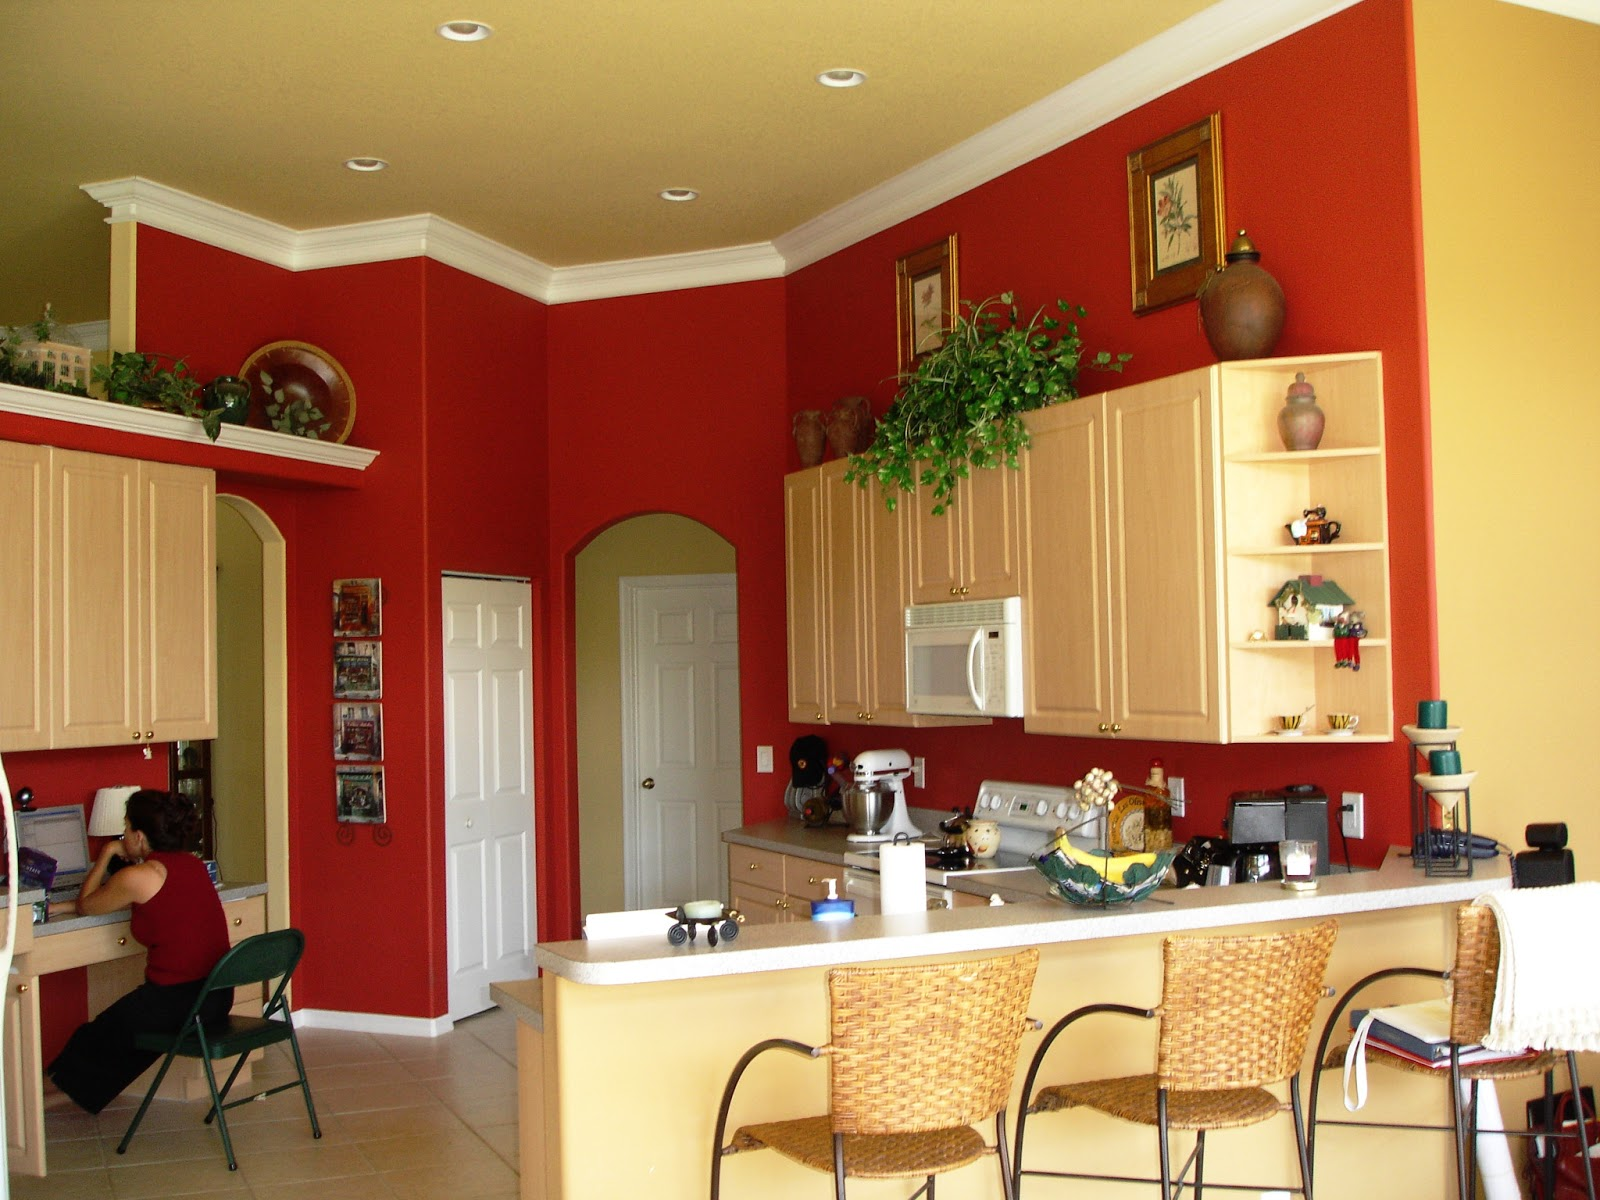 Accent wall painting color ideas 2013 interior for Home decorating ideas kitchen designs paint colors